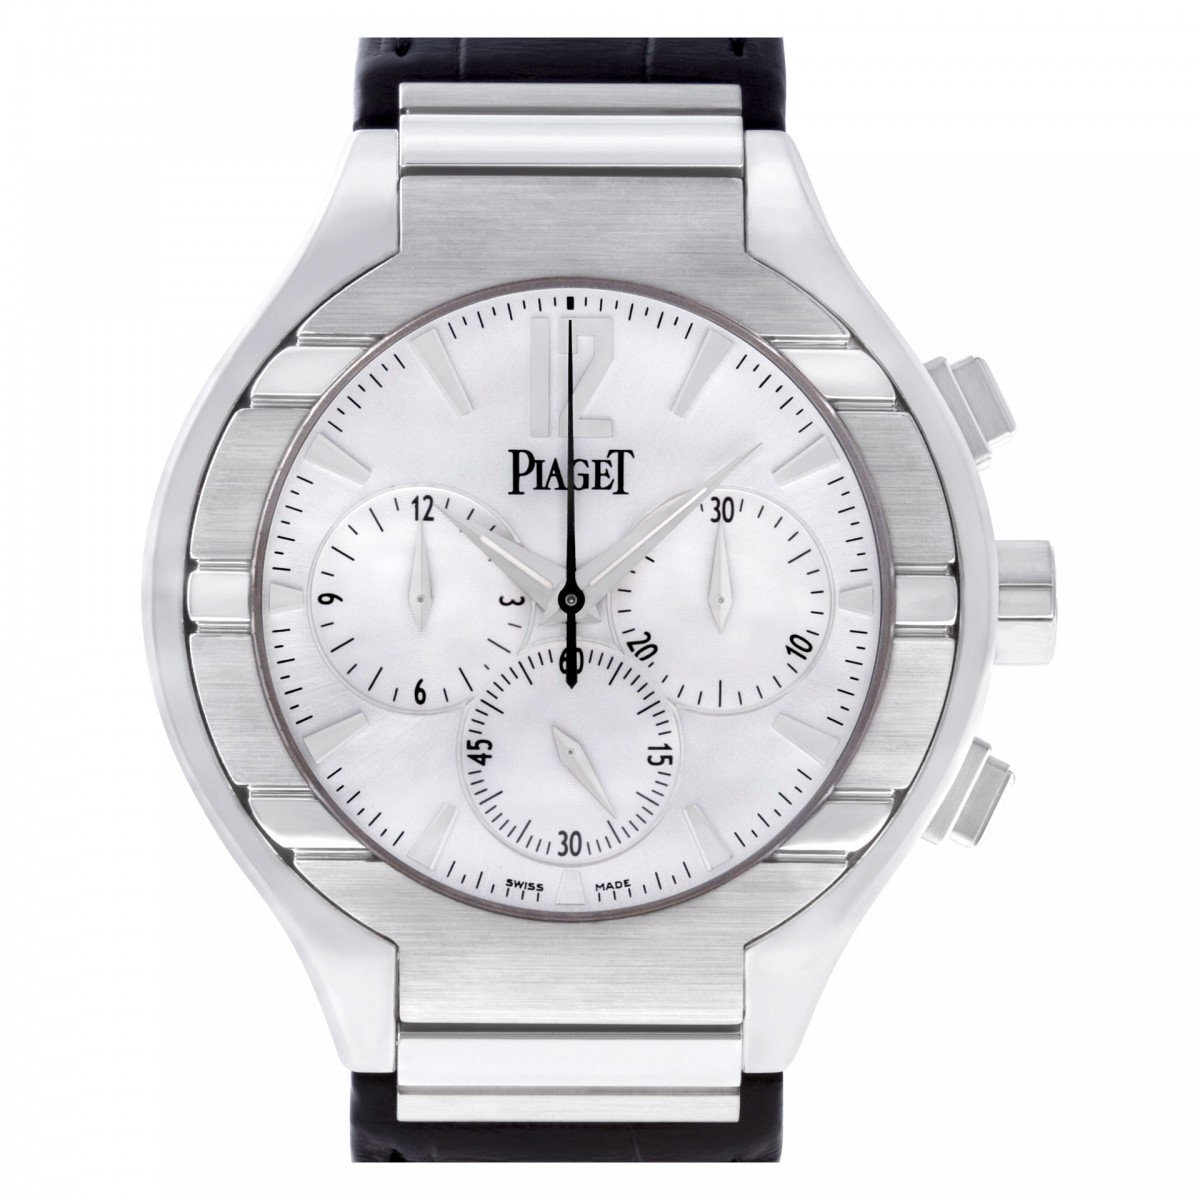 6b2169956c0 Pre-owned Piaget Polo GOA29017 18k white gold Silver dial 40mm auto wa